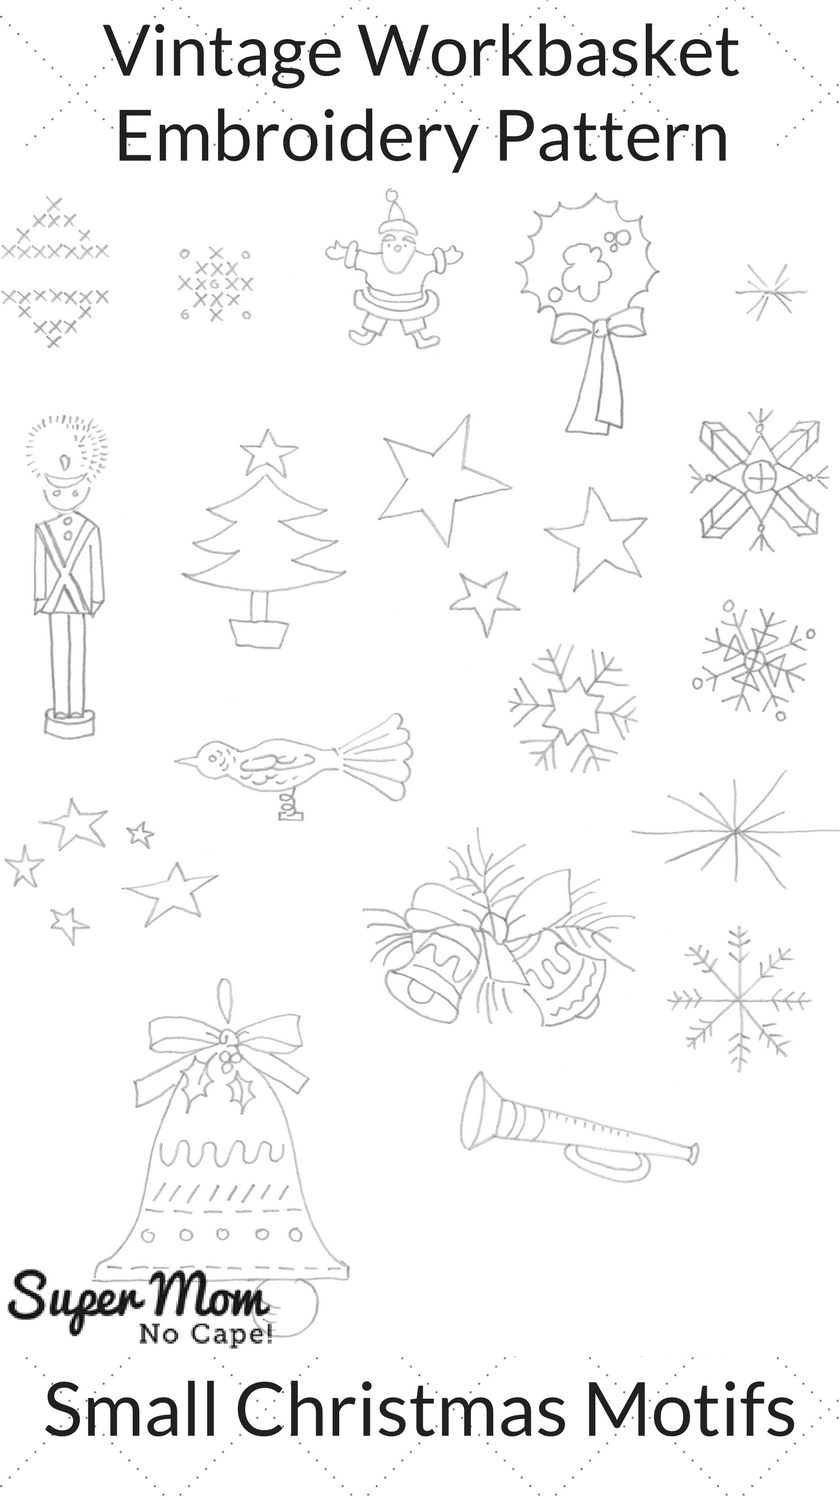 Vintage Workbasket Embroidery Pattern - Small Christmas Motifs